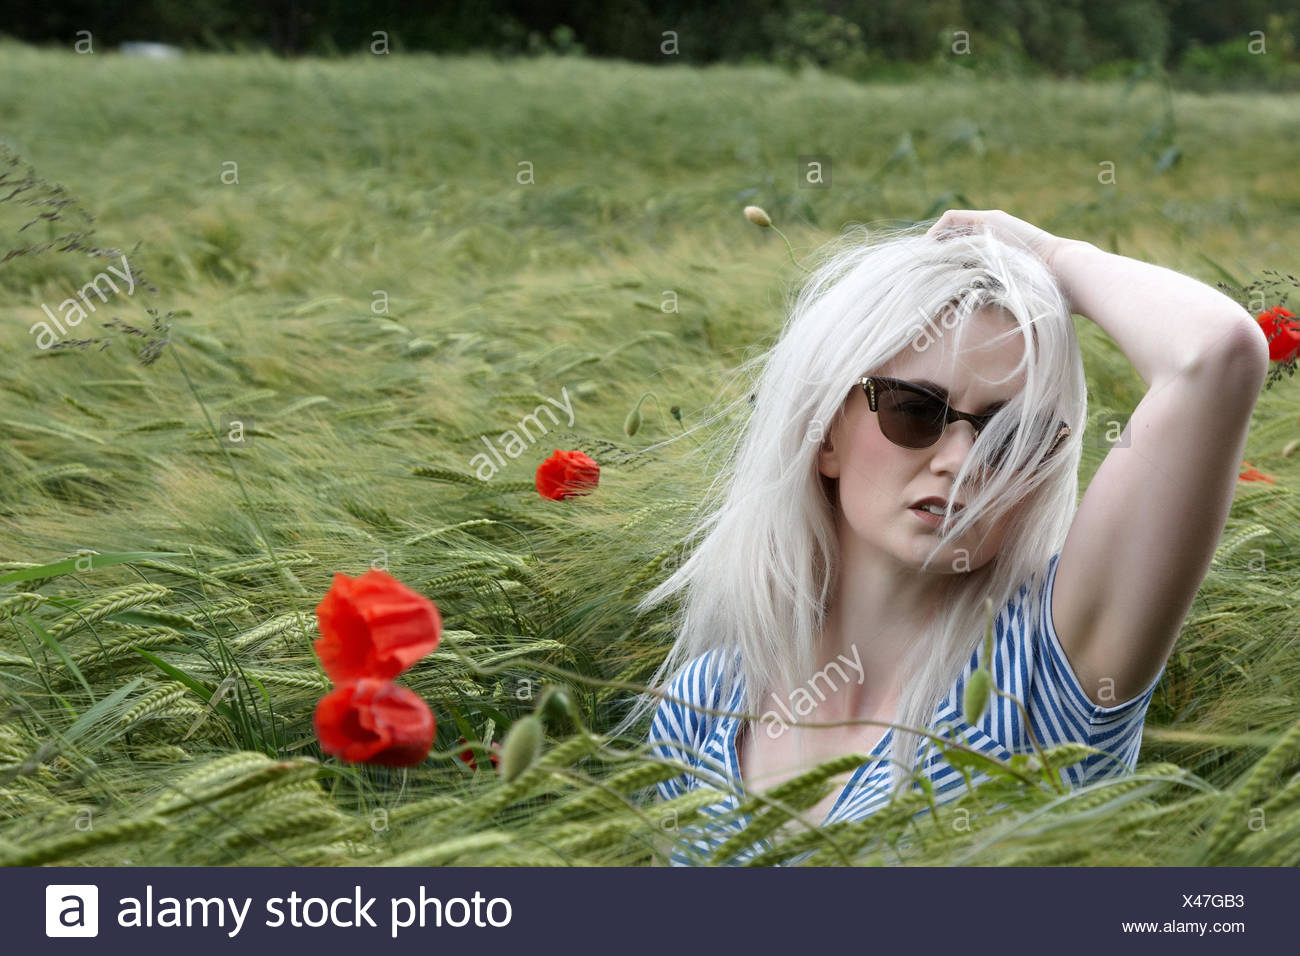 female, blonde, dapper, accosting, pretty, prettily, prettier, ravishing, - Stock Image